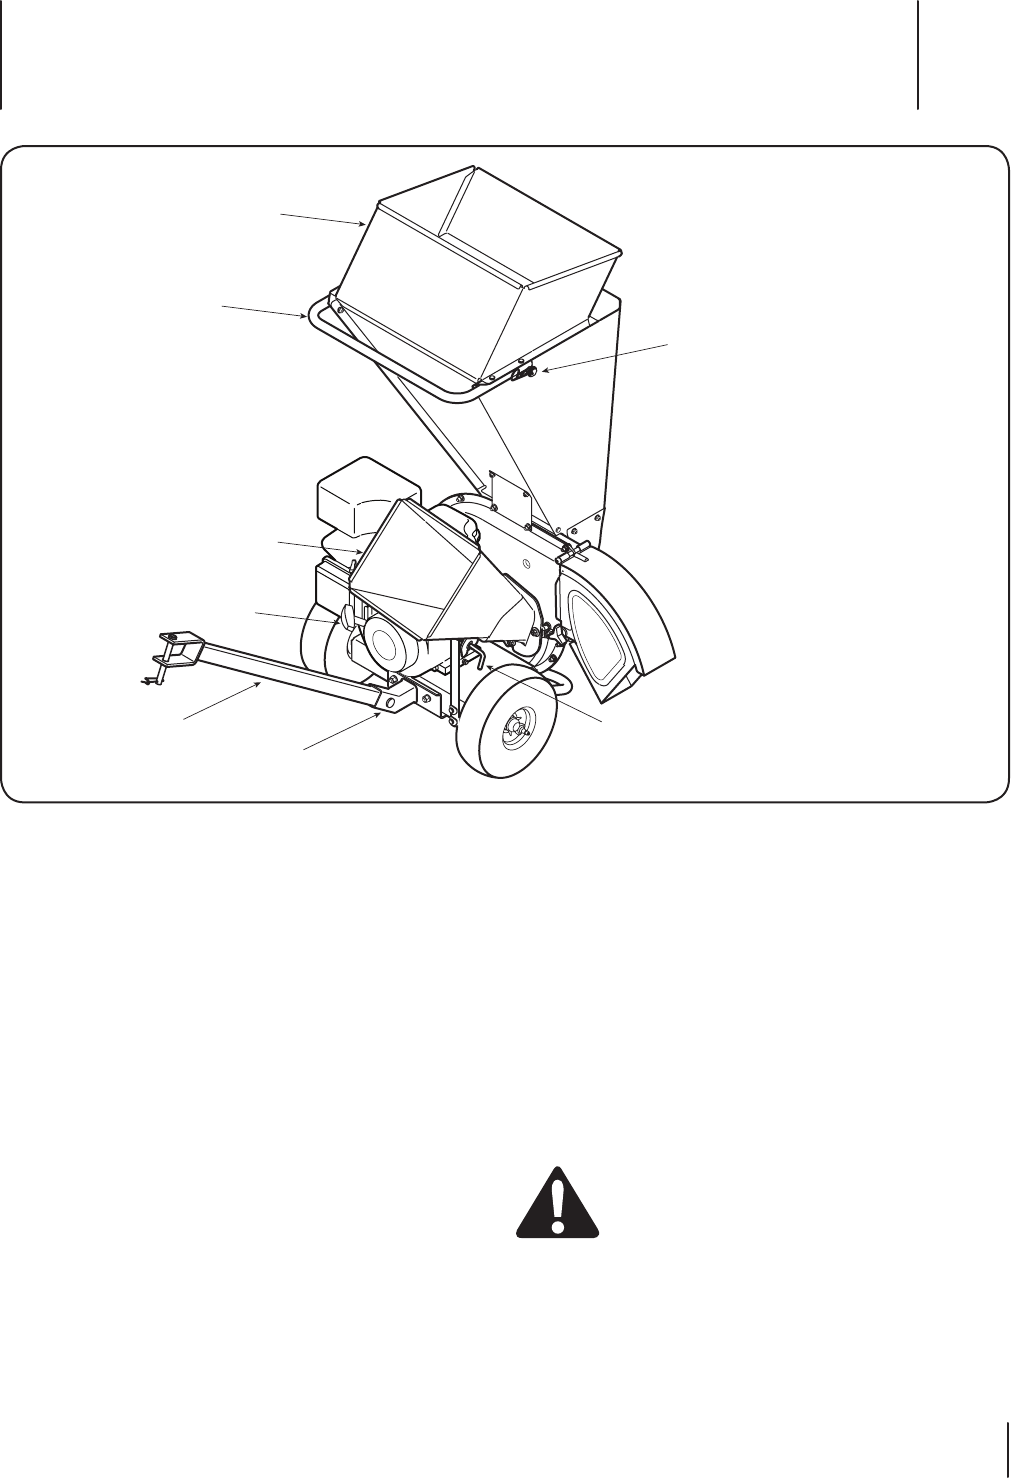 Page 9 of Cub Cadet Chipper cs3310 User Guide